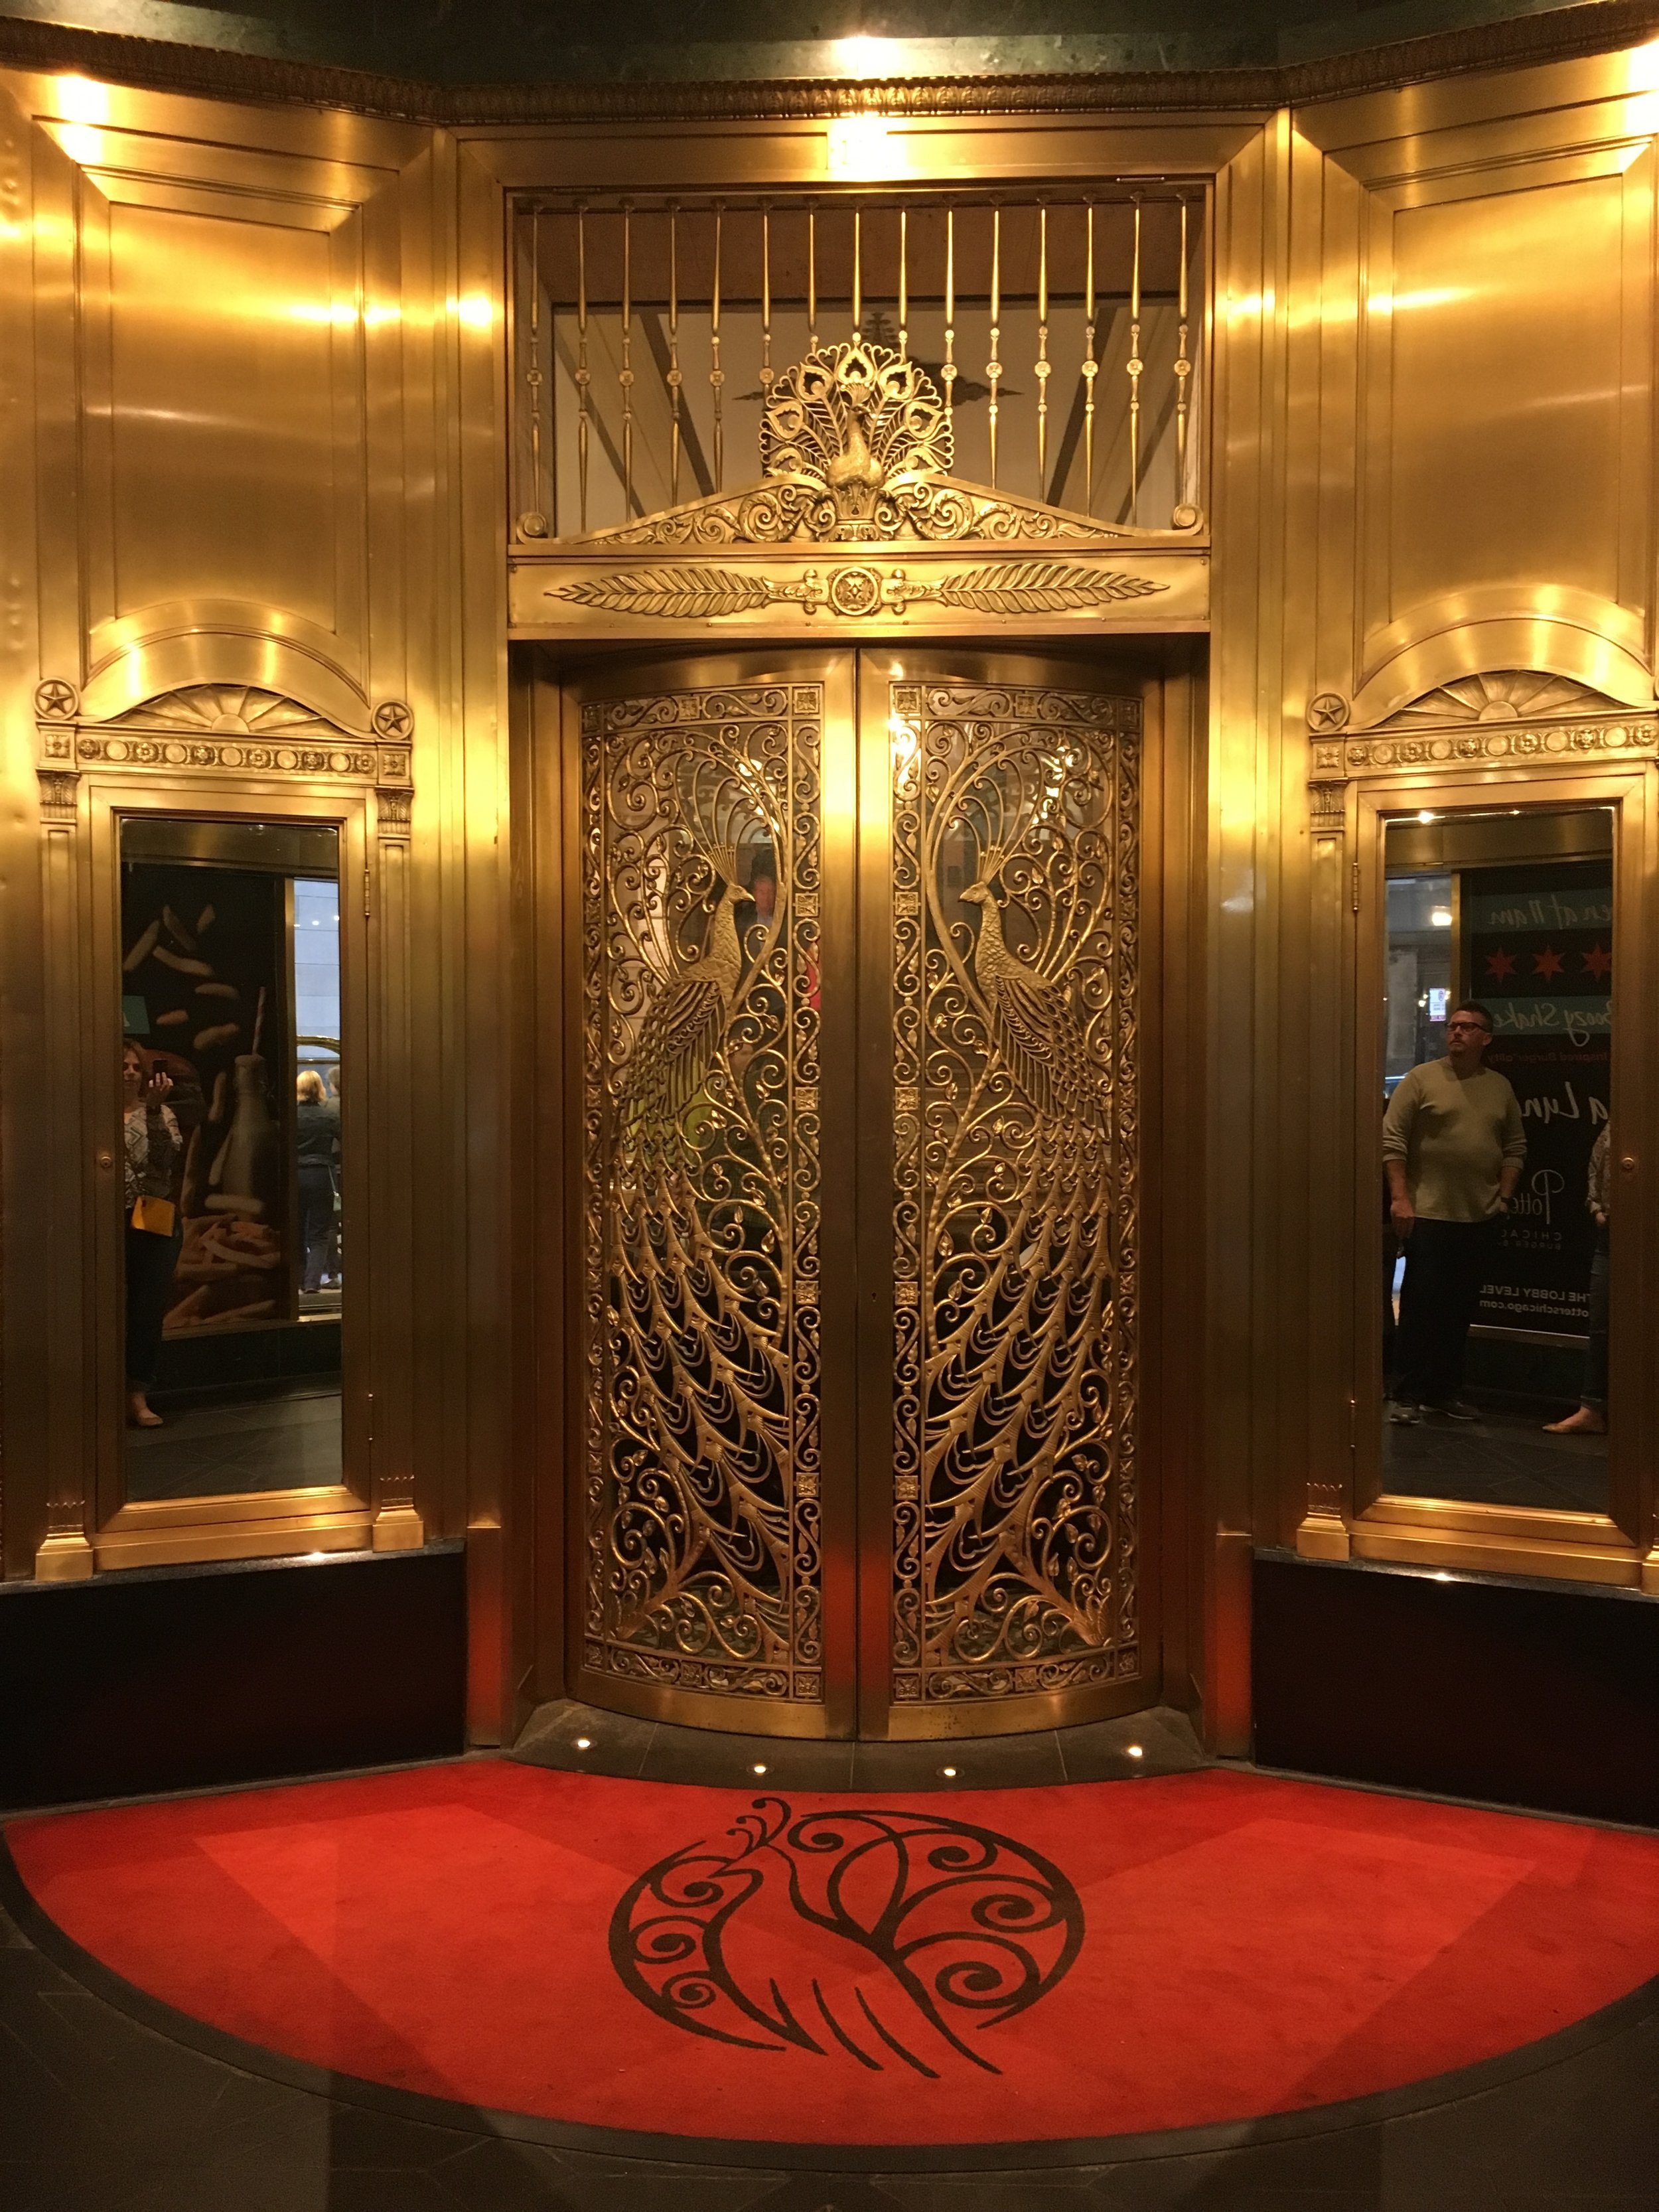 These hand-forged bronze doors were designed by Louis Comfort Tiffany for the C.D. Peacock jewelry store, and greeted us at the Palmer House